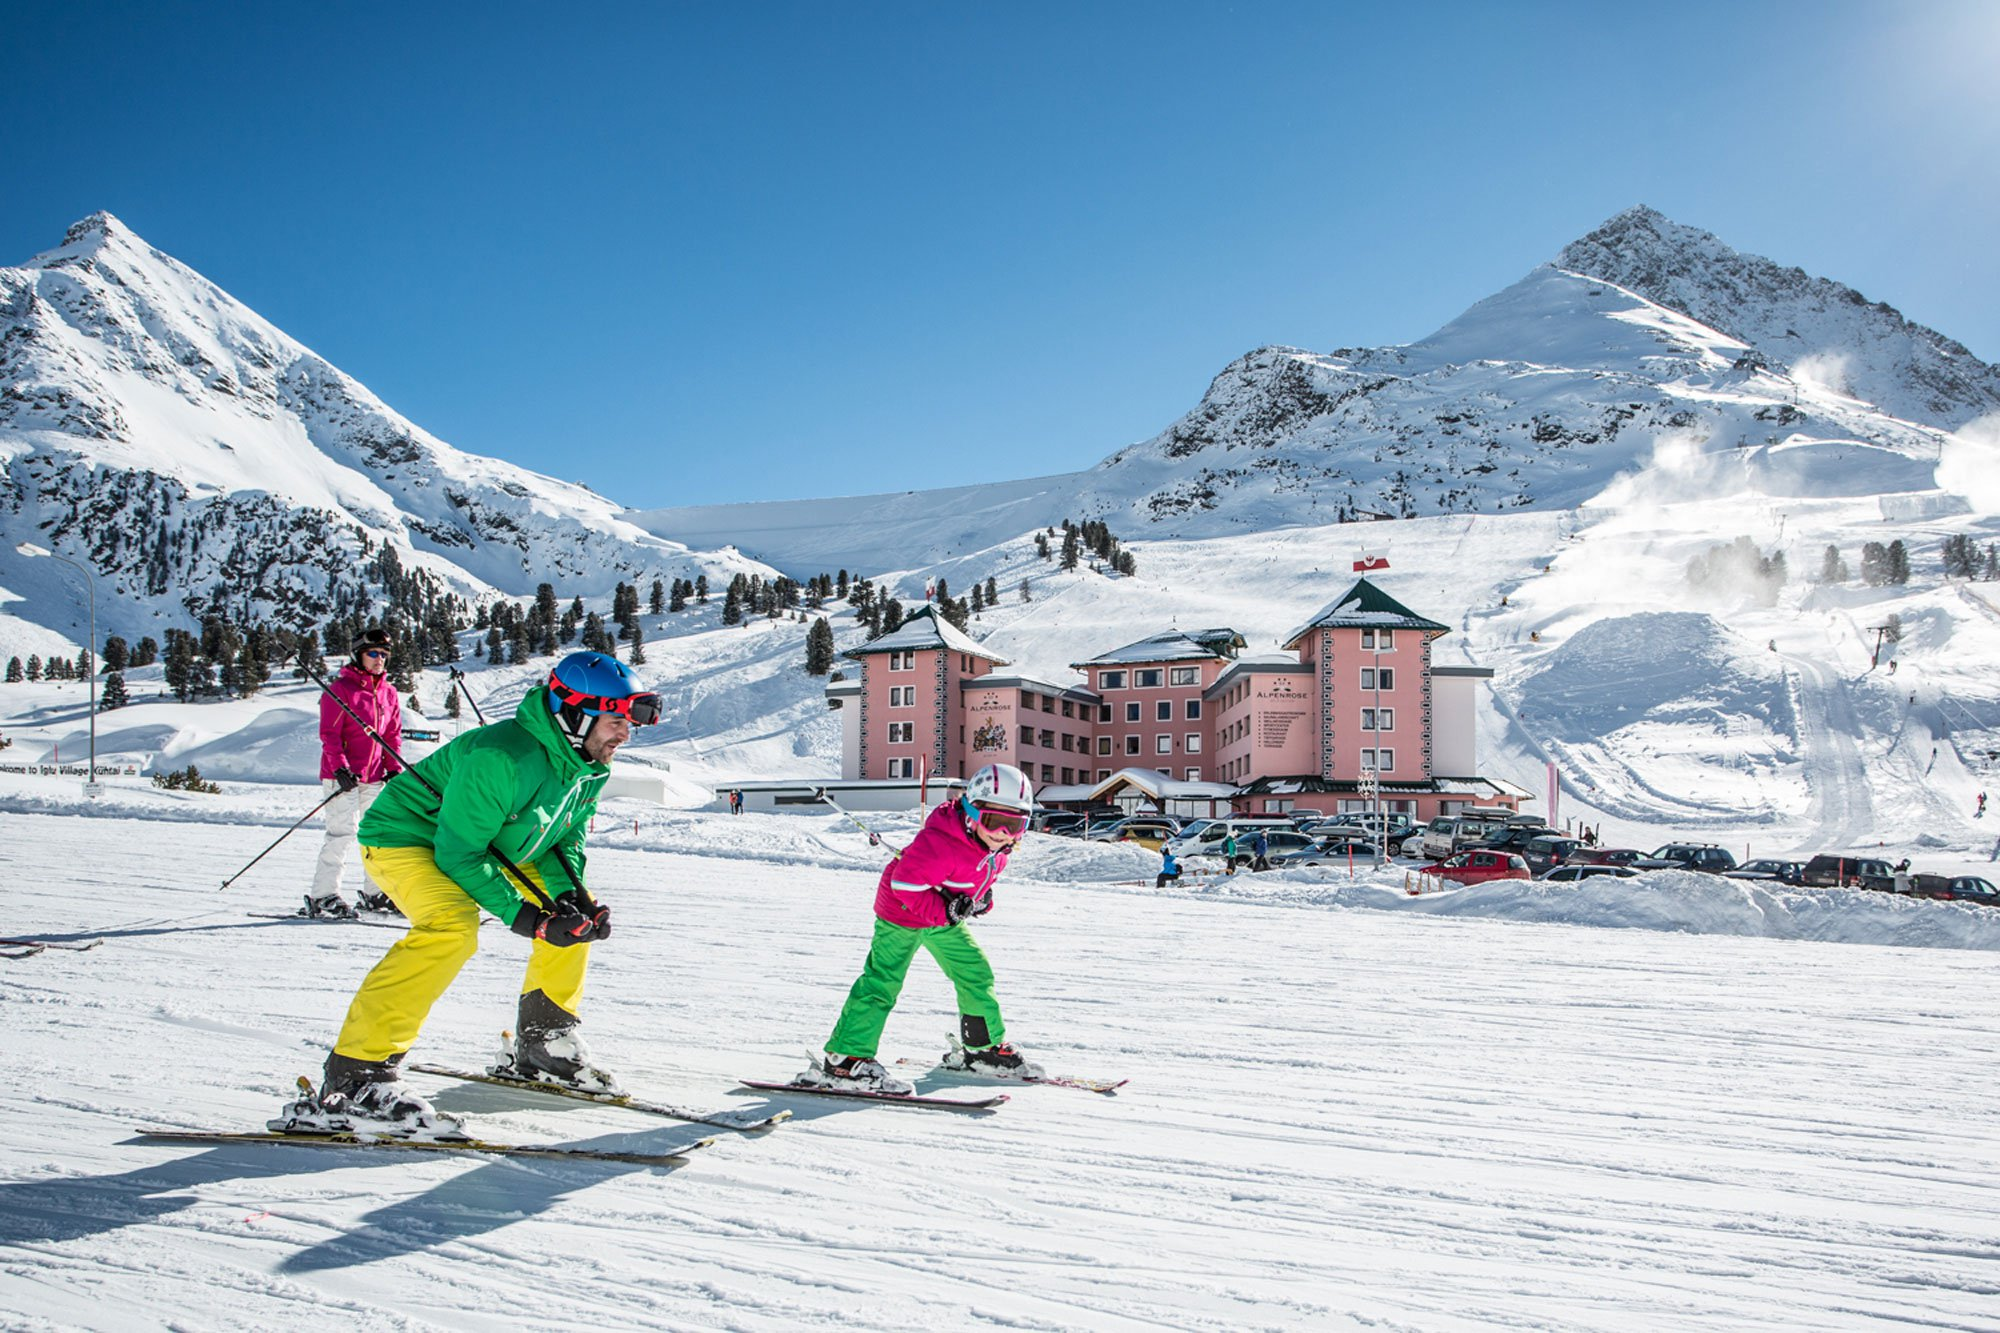 winter holiday for the whole family with ski courses and ski tickets